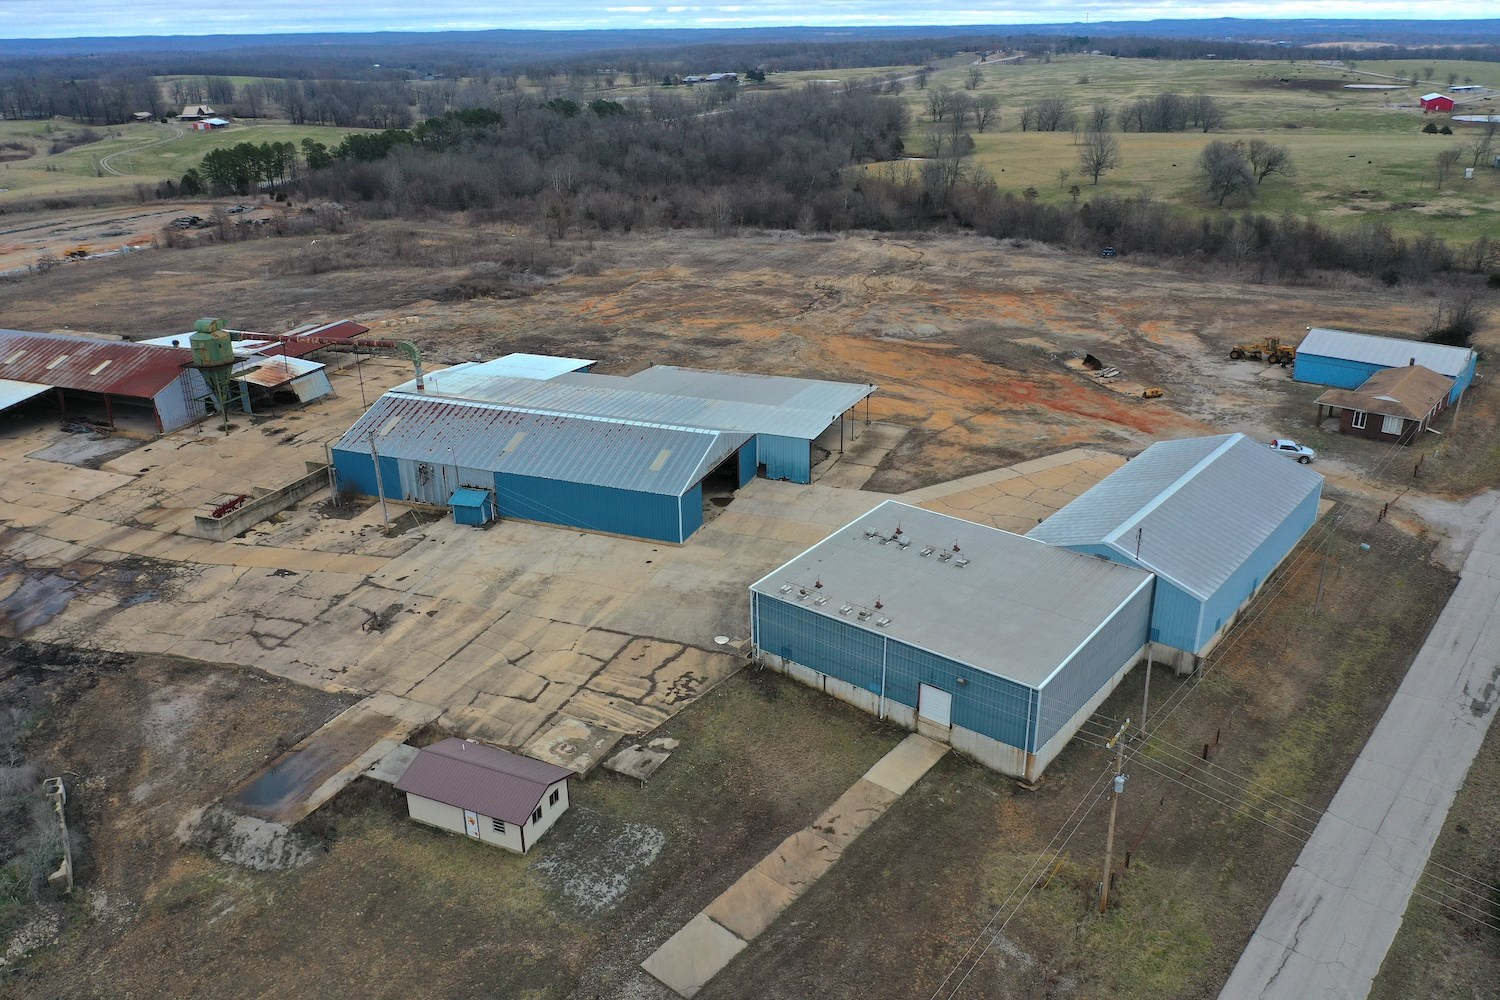 Commercial Property for Sale in Oregon Country, MO